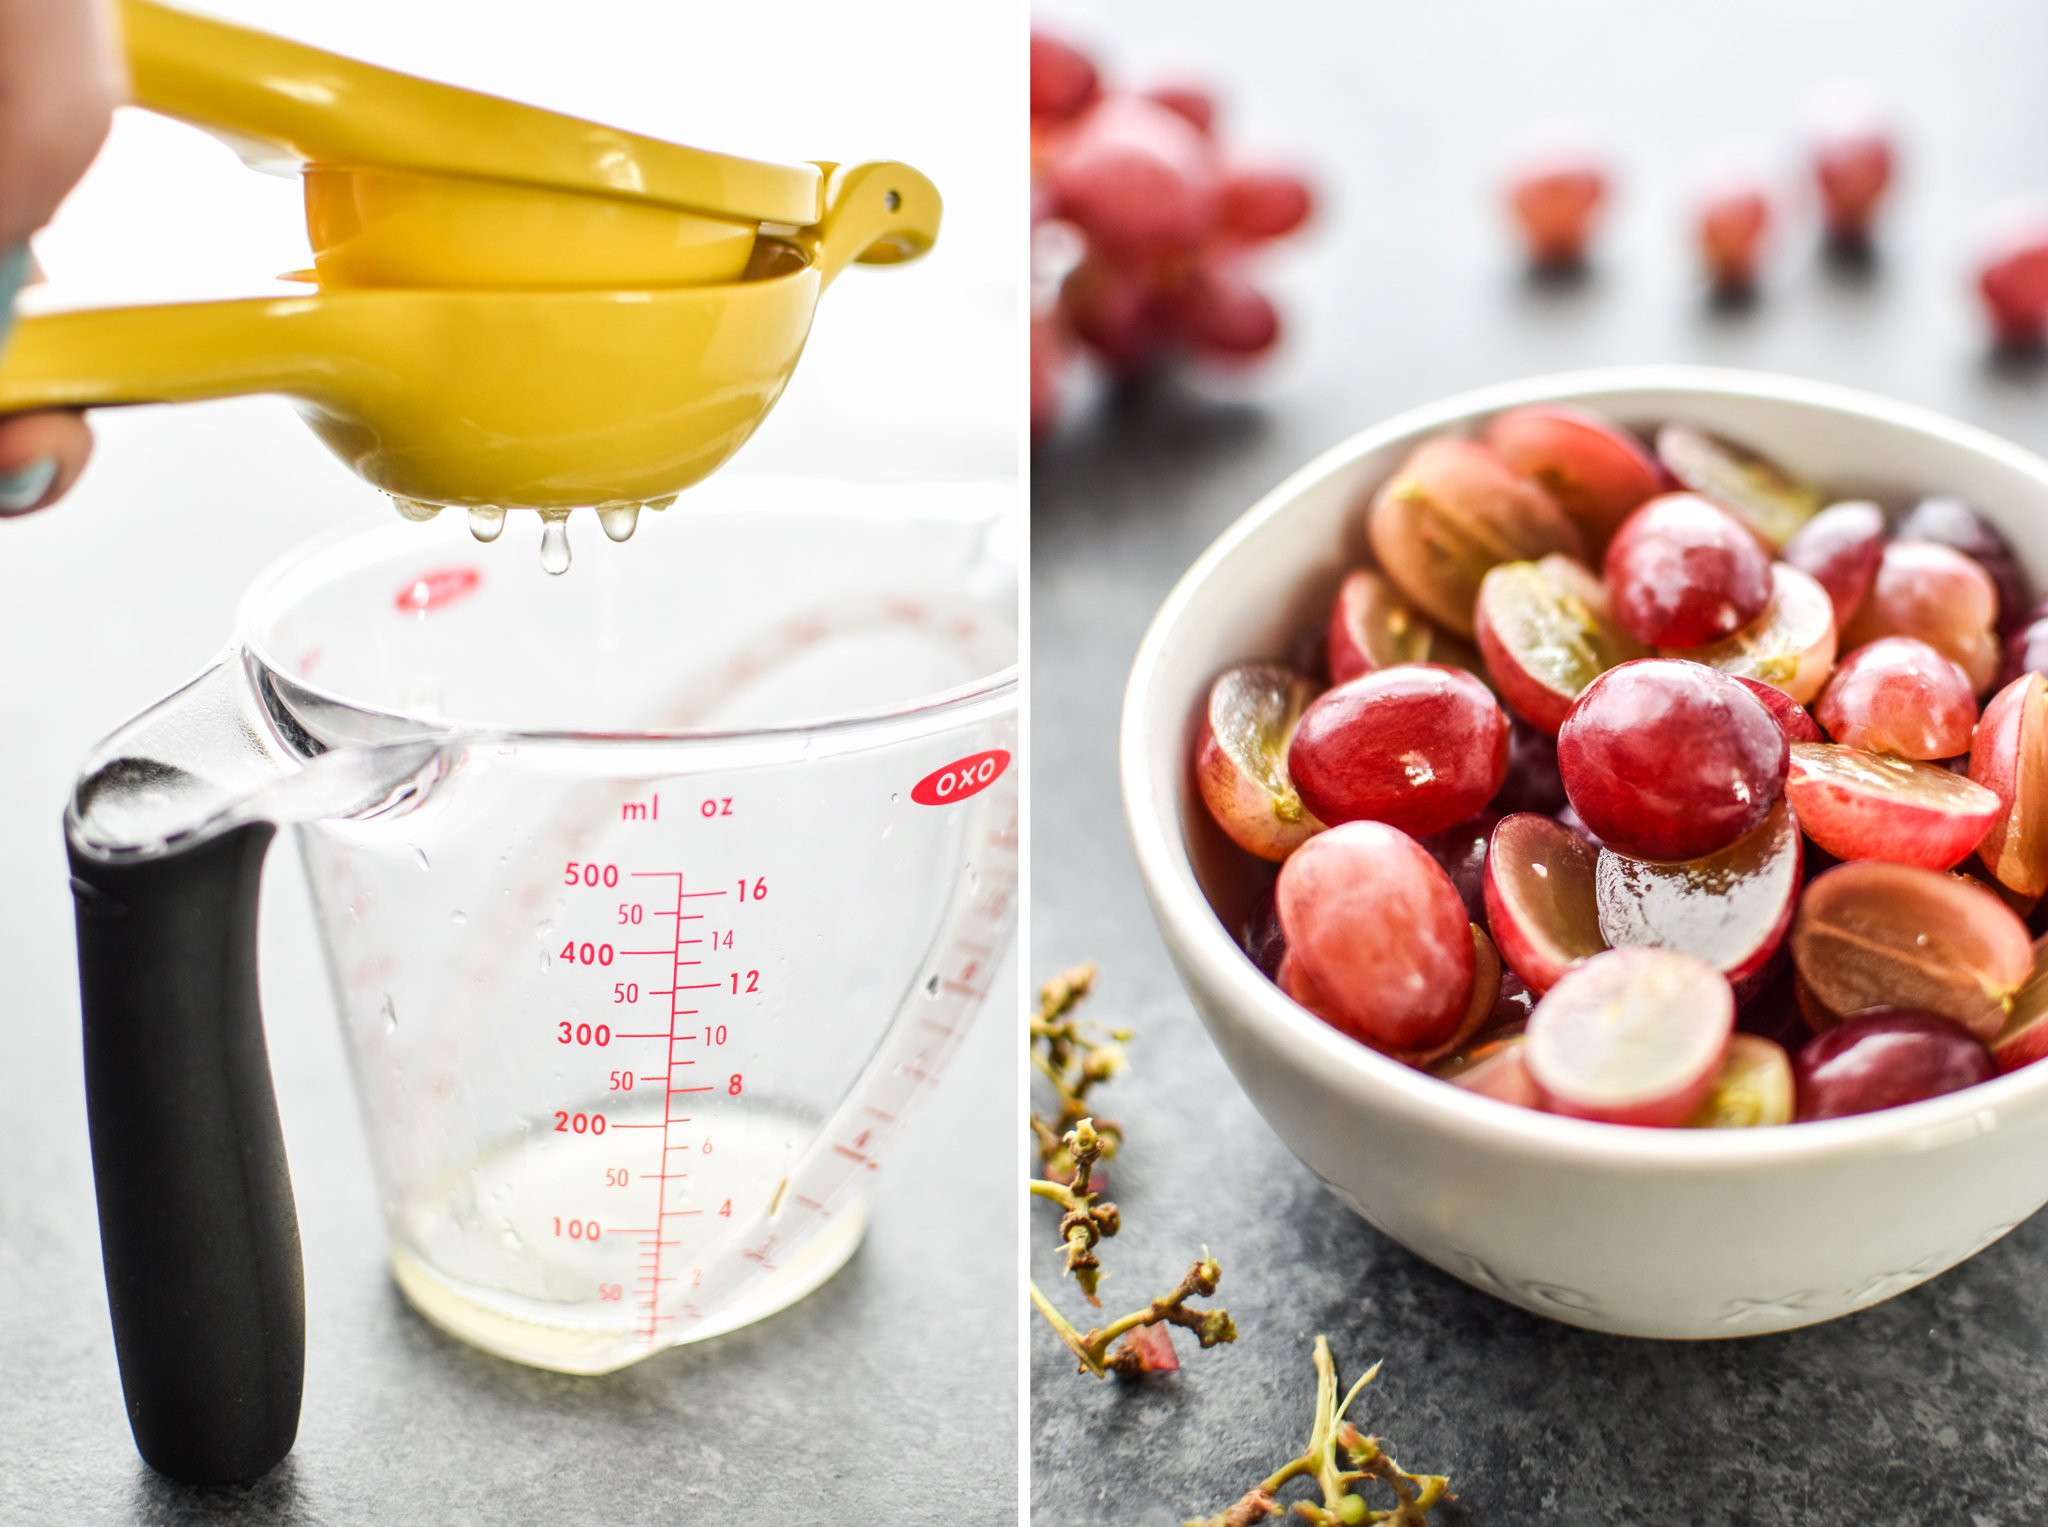 Left: Squeezing lemon juice to make the lemon poppyseed dressing. Right: Sliced grapes to be added to the salad.